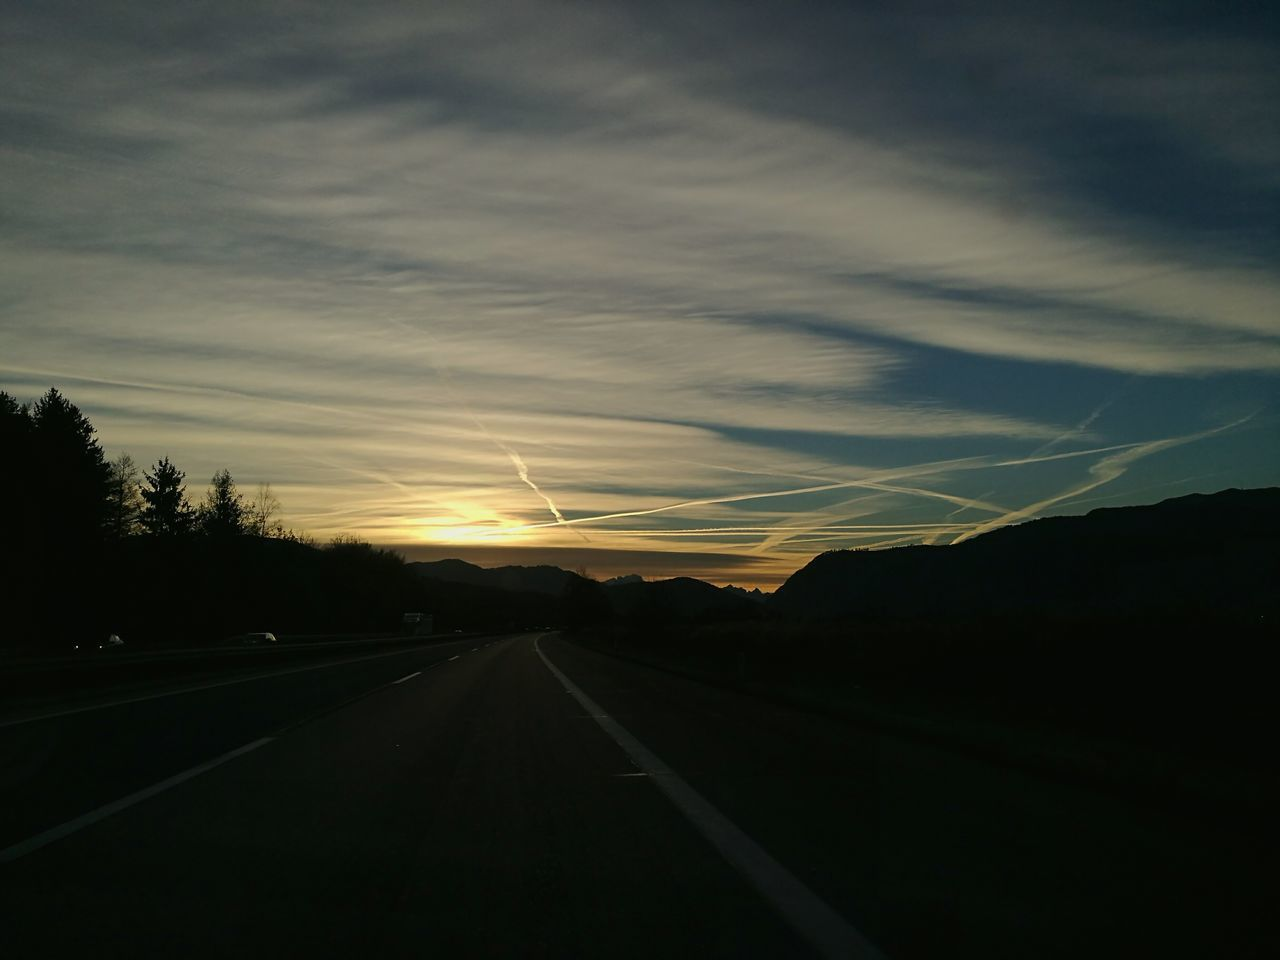 Road The Way Forward Transportation Travel Tree Cloud - Sky Highway Sunset Driving Journey Scenics Sky No People Beauty In Nature Landscape Winding Road Speed Night Outdoors Motion thinking it over